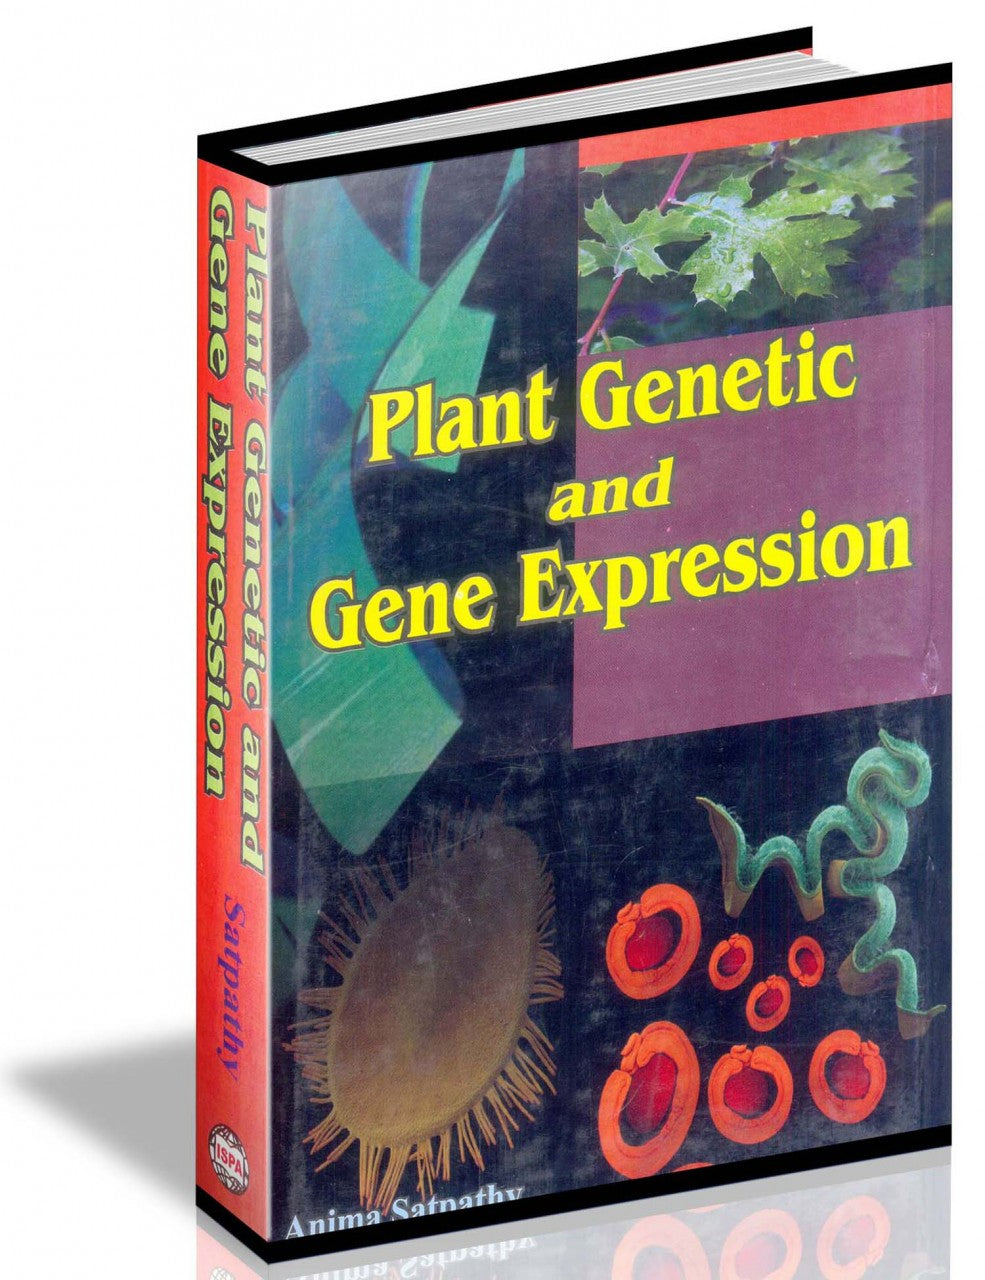 Plant Genetic and Gene Expression